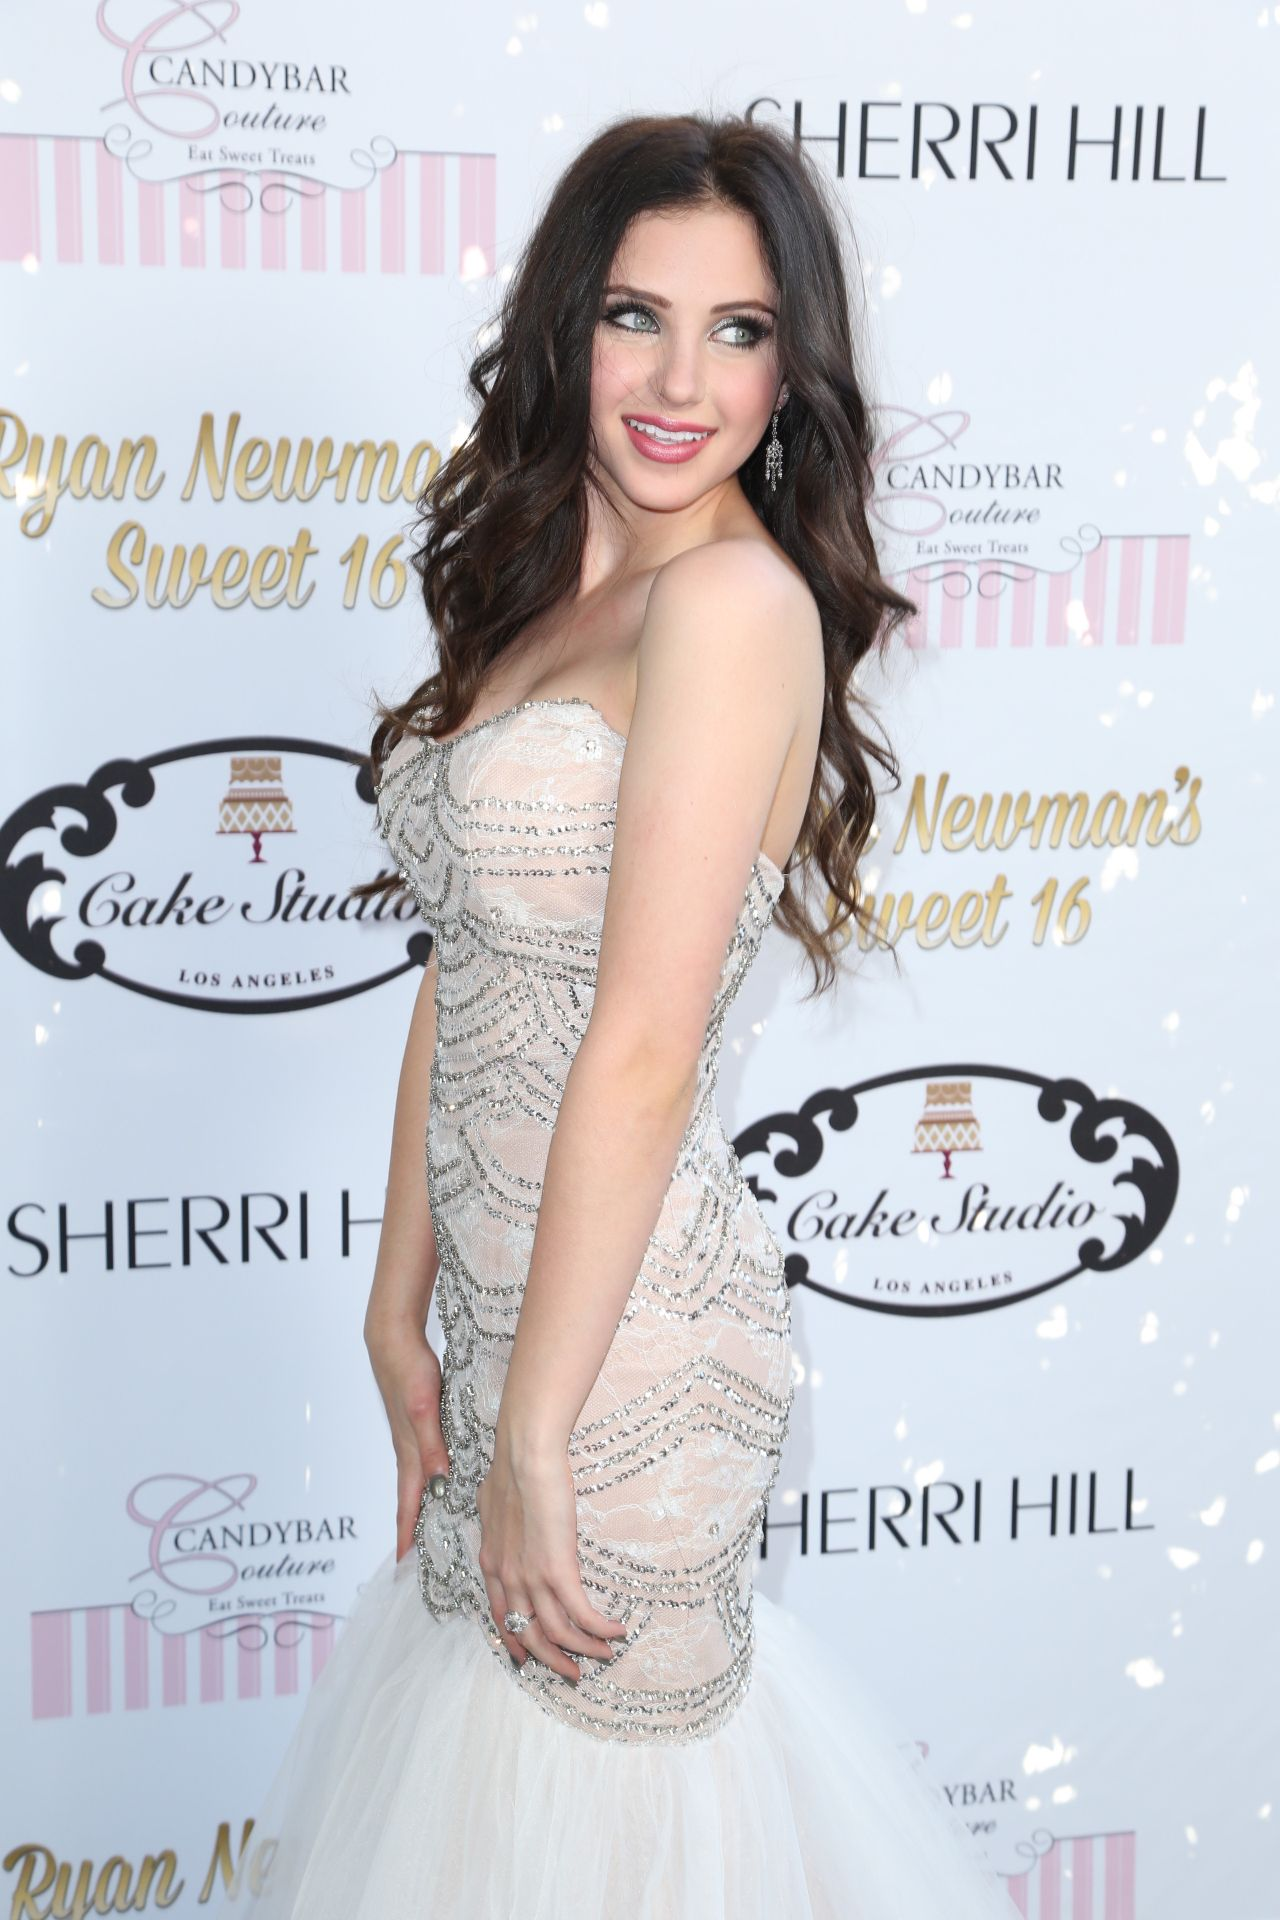 Ryan Newman - Celebrates Her 16th birthday at Emerson Theater in Hollywood